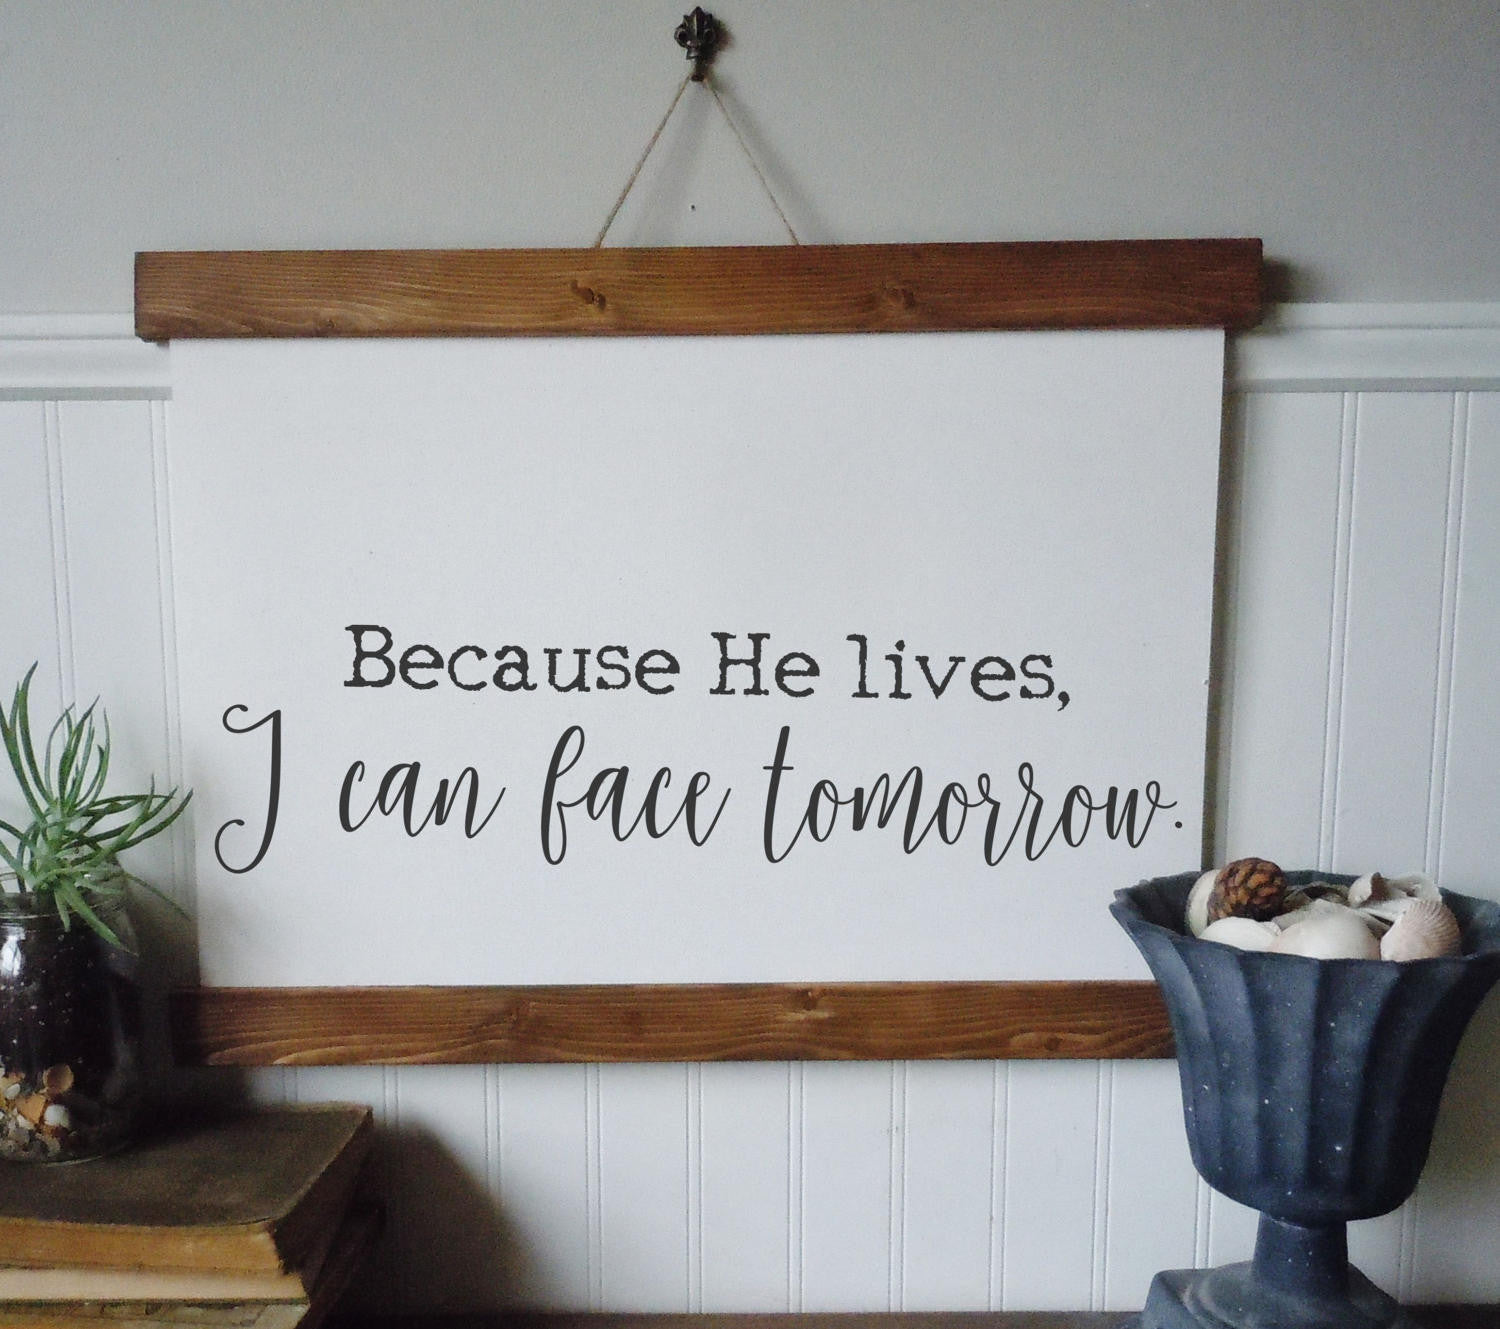 Because he lives I can face tomorrow/easter decor/canvas print/framed art/home decor/wall art